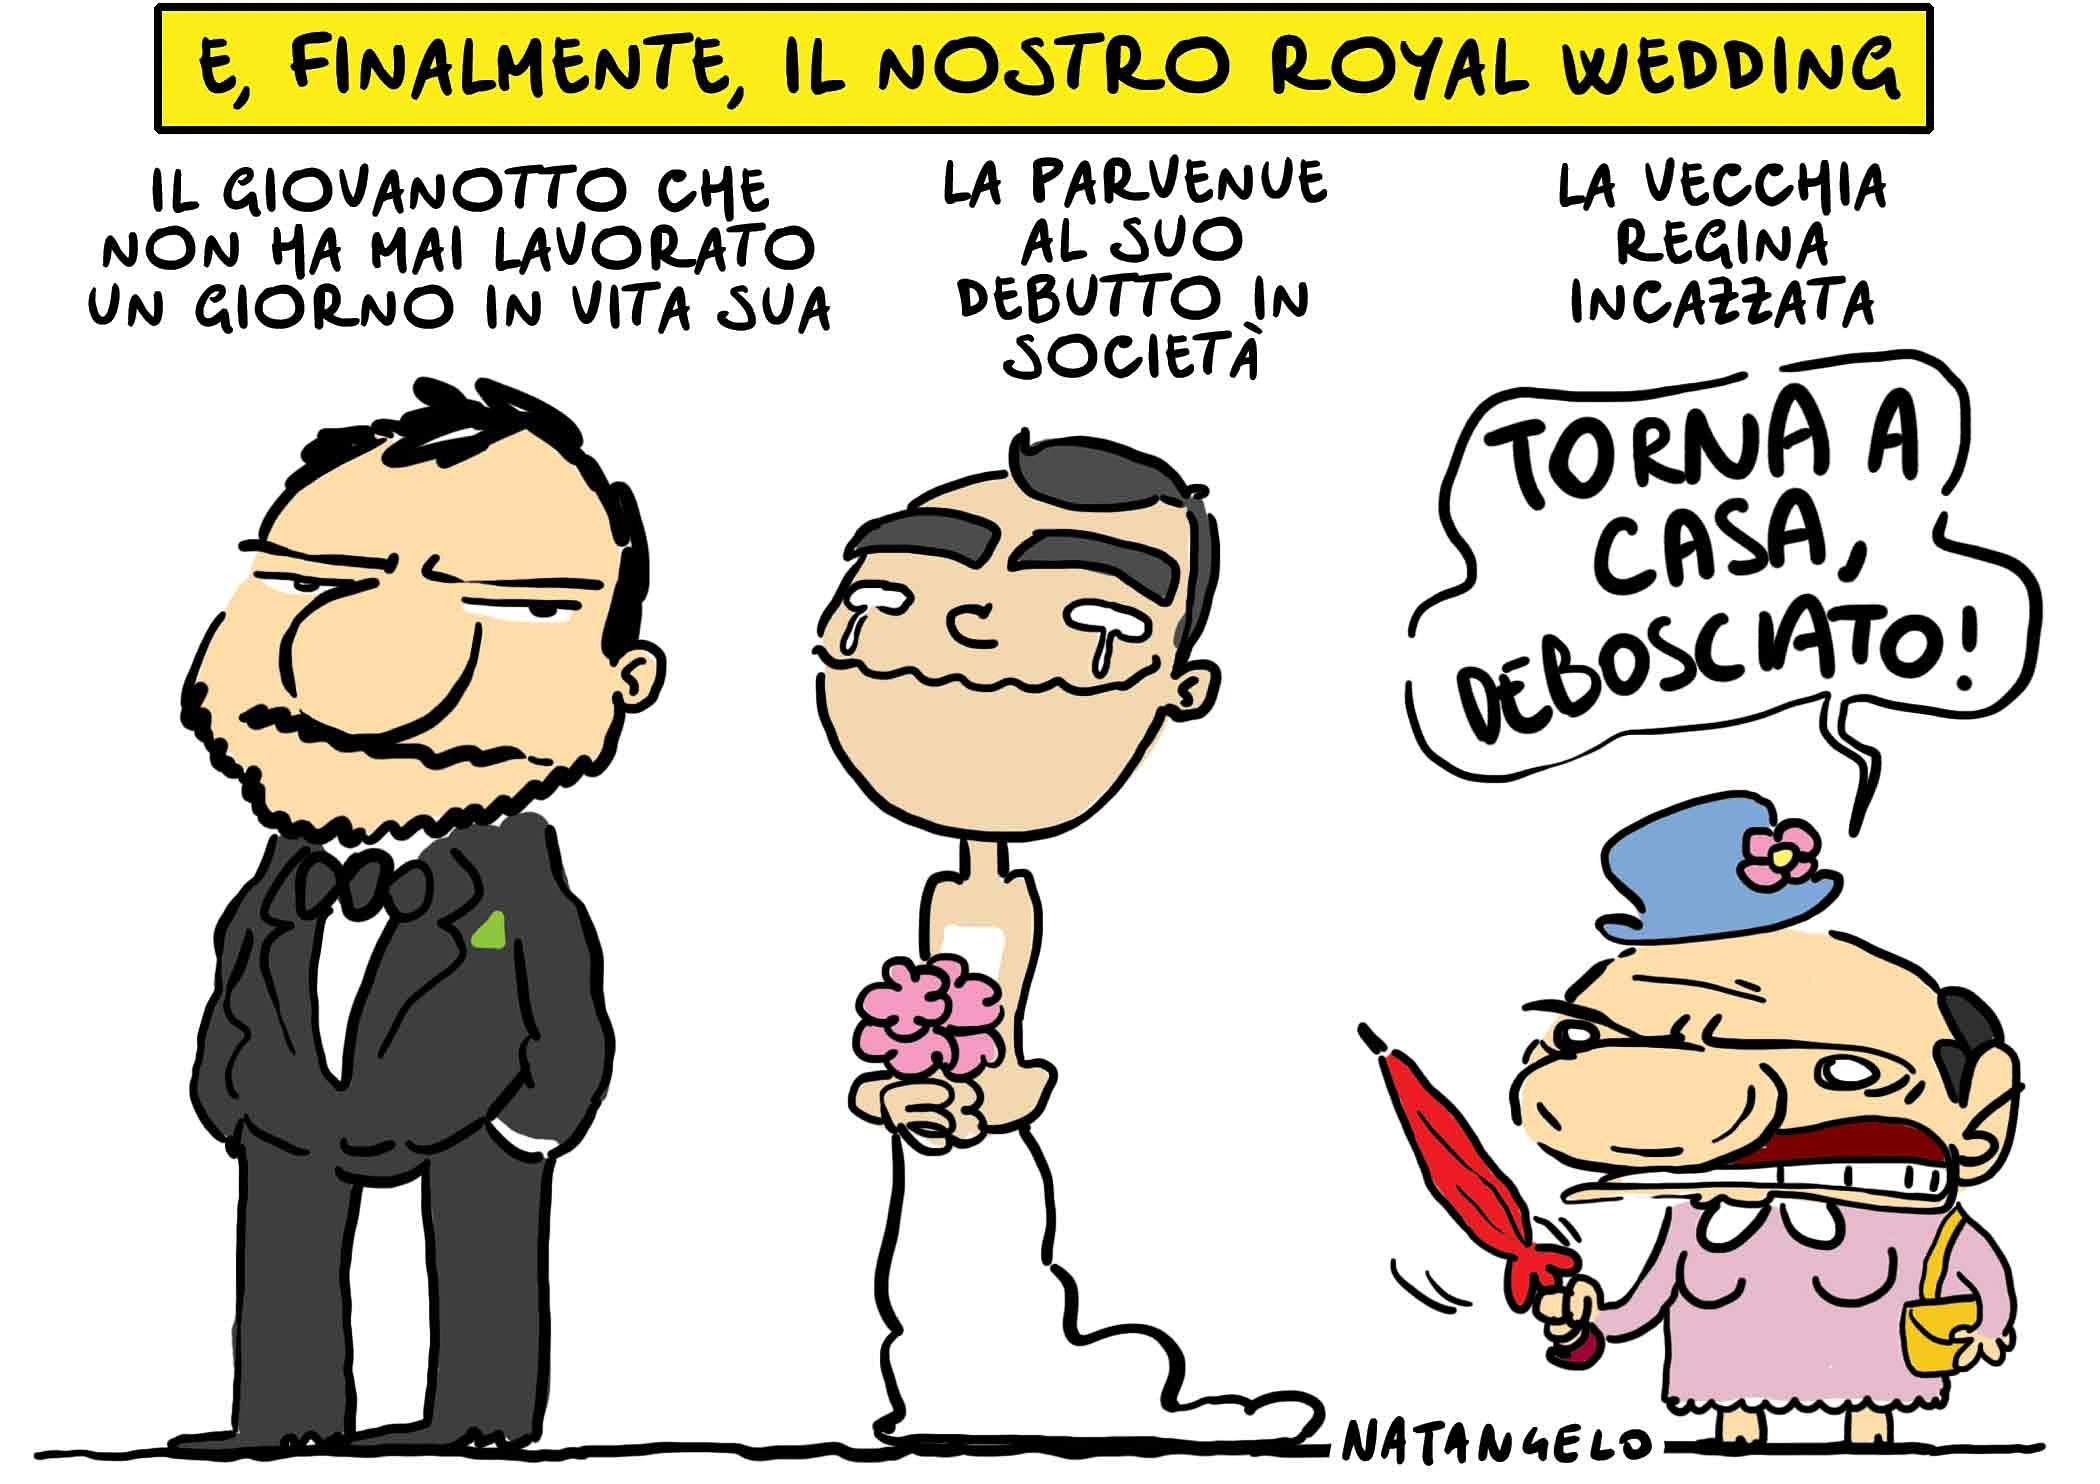 Royal wedding all'italiana